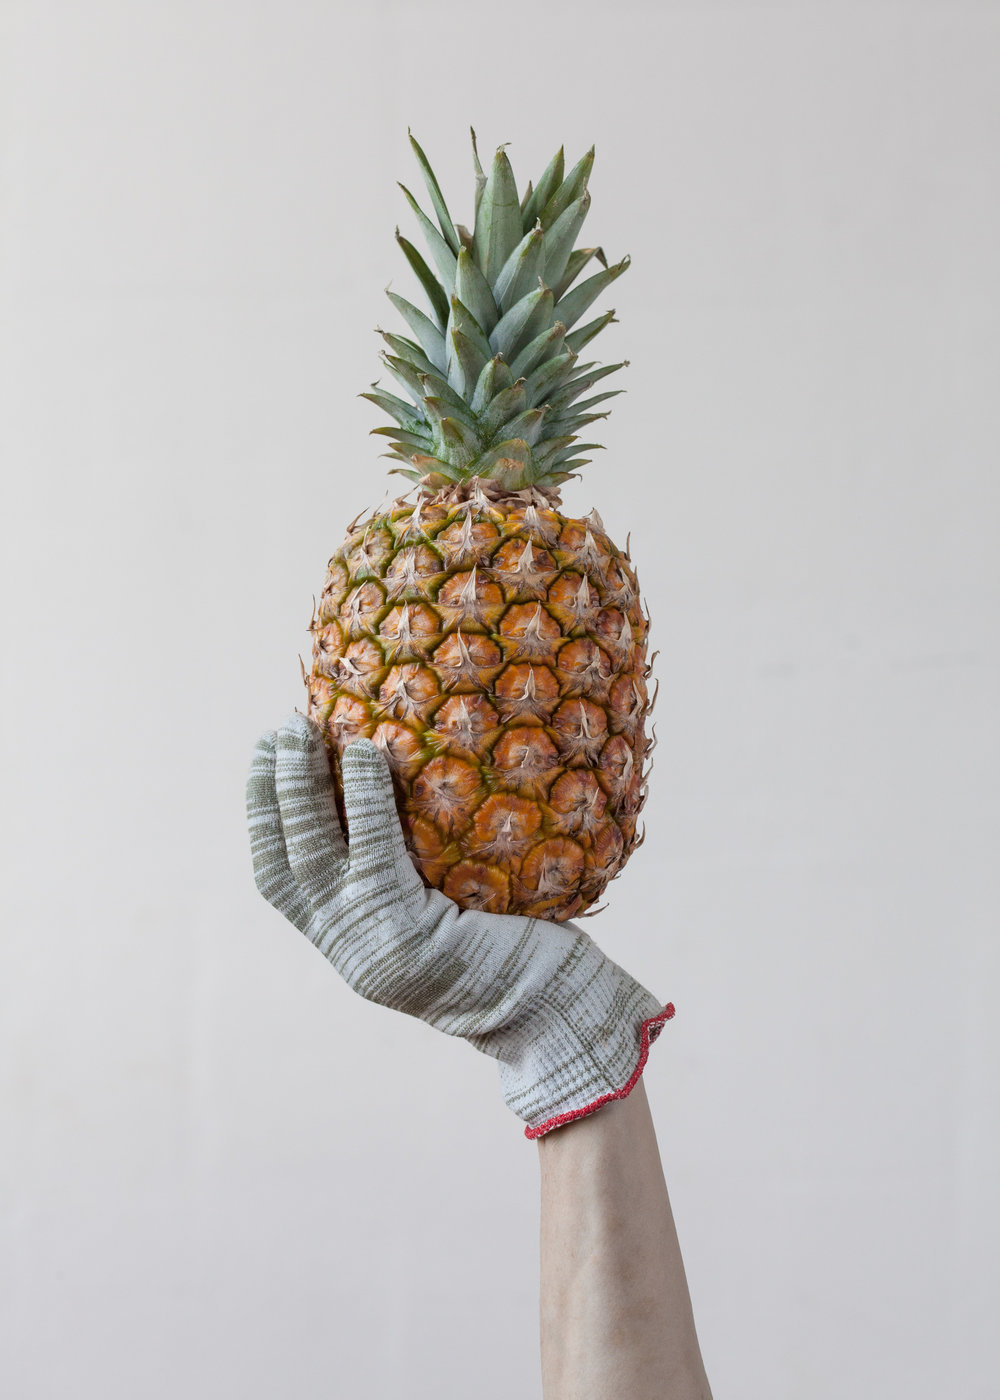 Pinapple Held by Gloves (1 of 2), 2014 Inkjetprint auf Bütten, Edition von 5 + 2AP 80 x 112 cm